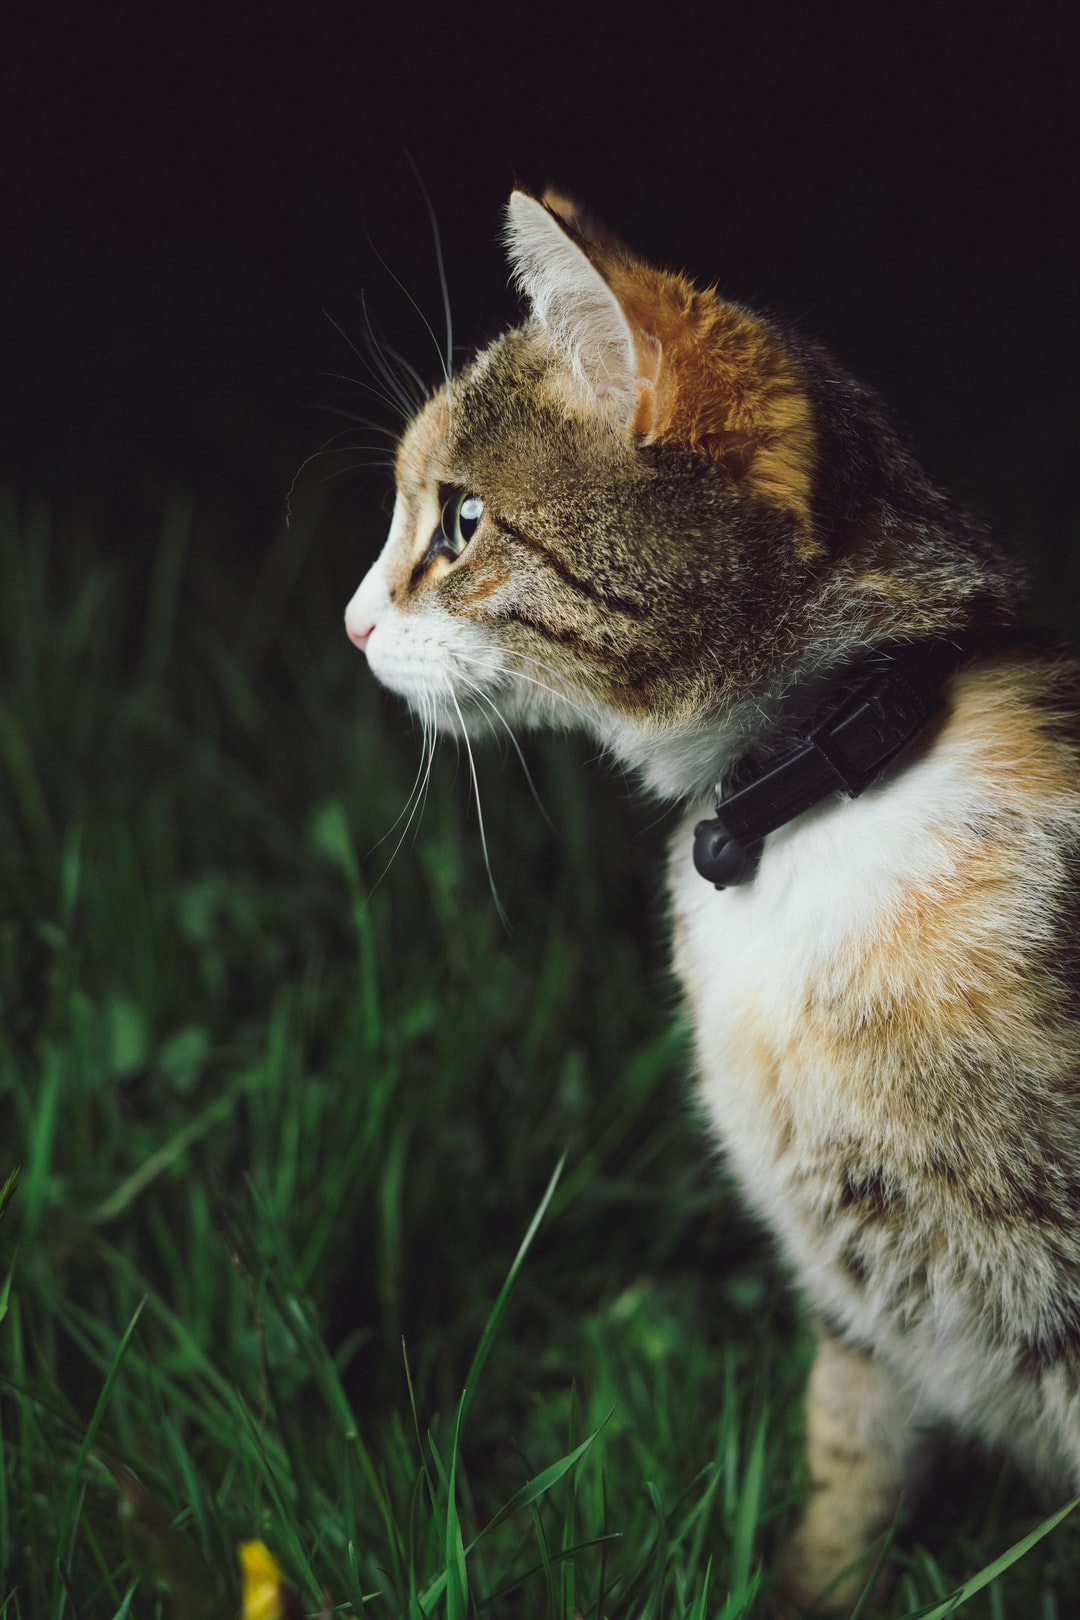 Picture Of Cat With Collar And Tie